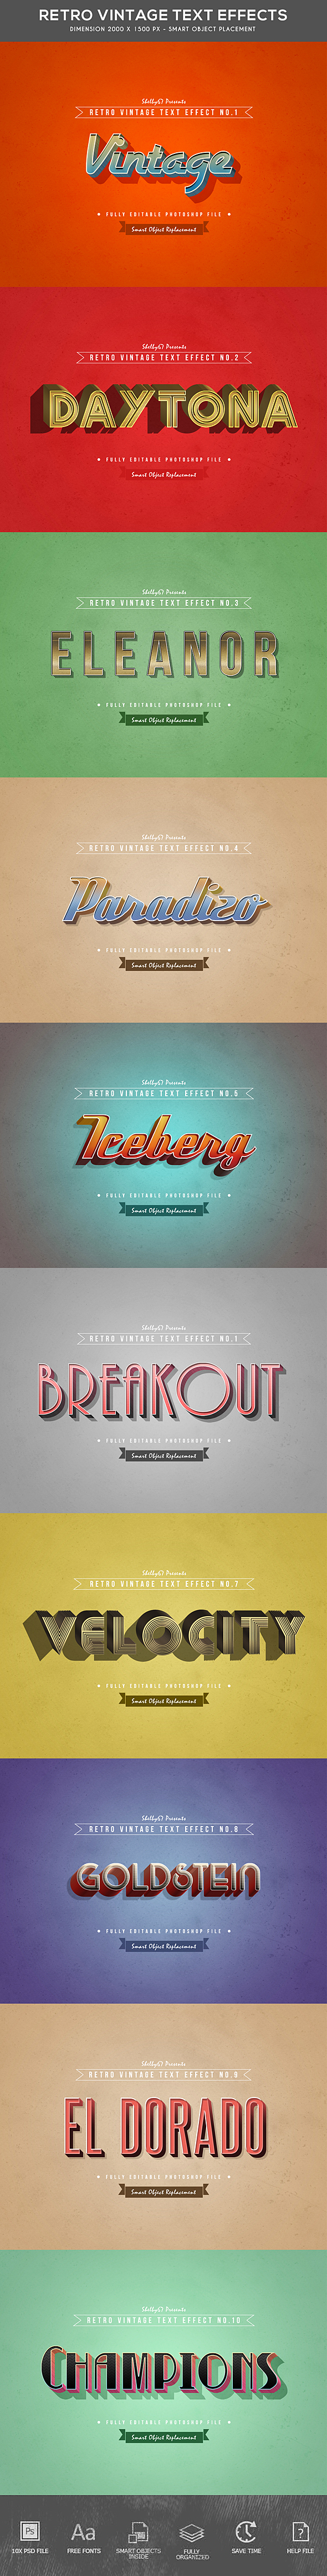 GraphicRiver Retro Vintage Text Effects 21142668